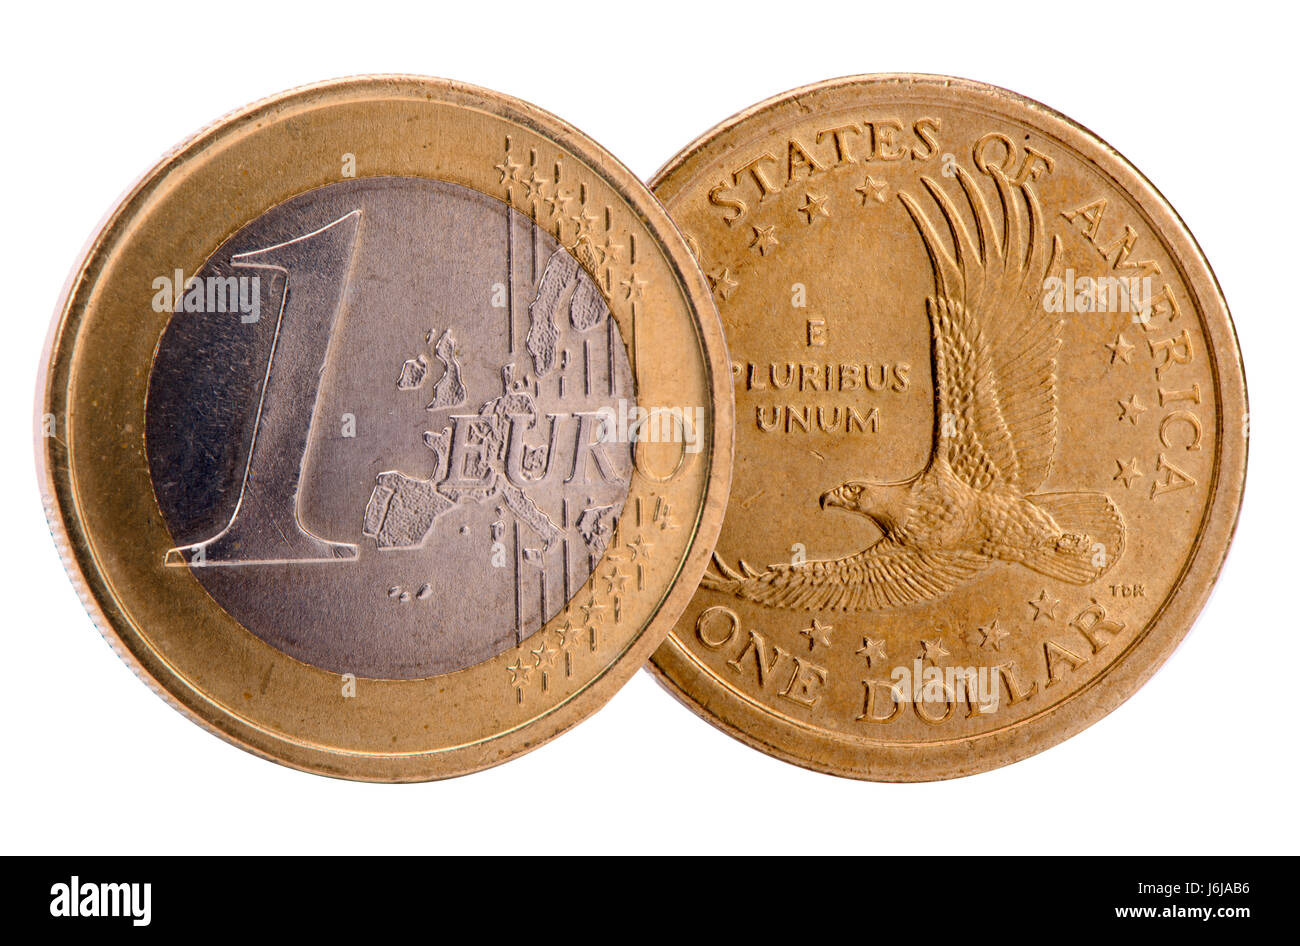 single and isolated coins of Dollar and Euro currencies - Stock Image